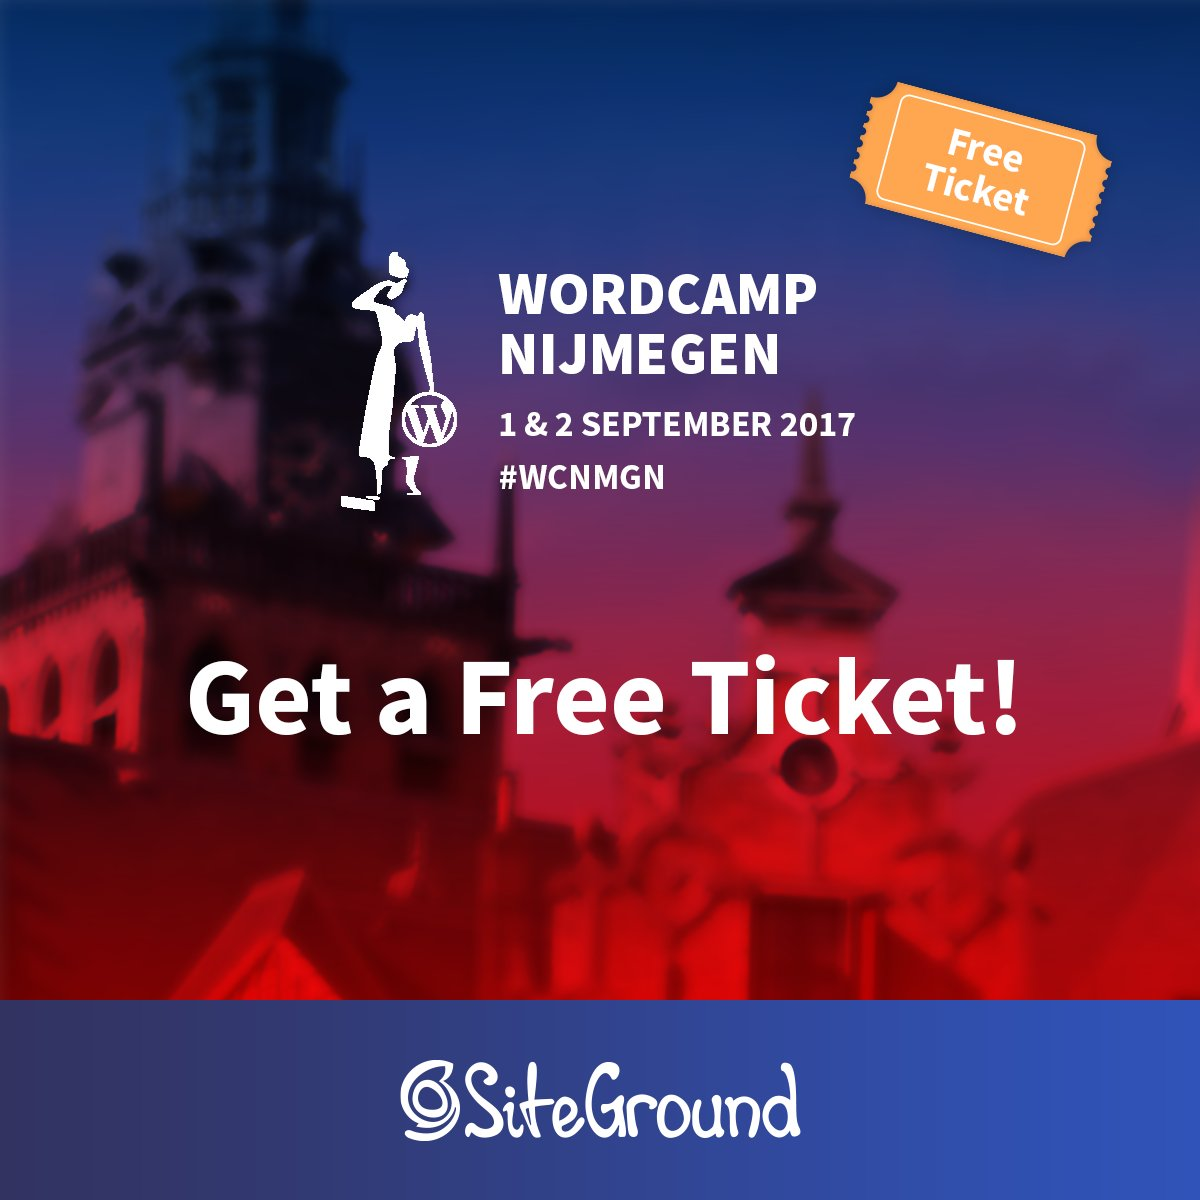 test Twitter Media - Win free @WordCampNmgn ticket by entering our giveaway. Tell us why you want to go by 25 August at events at siteground dot com.  #wcnmgn https://t.co/0qWb5PRVSc